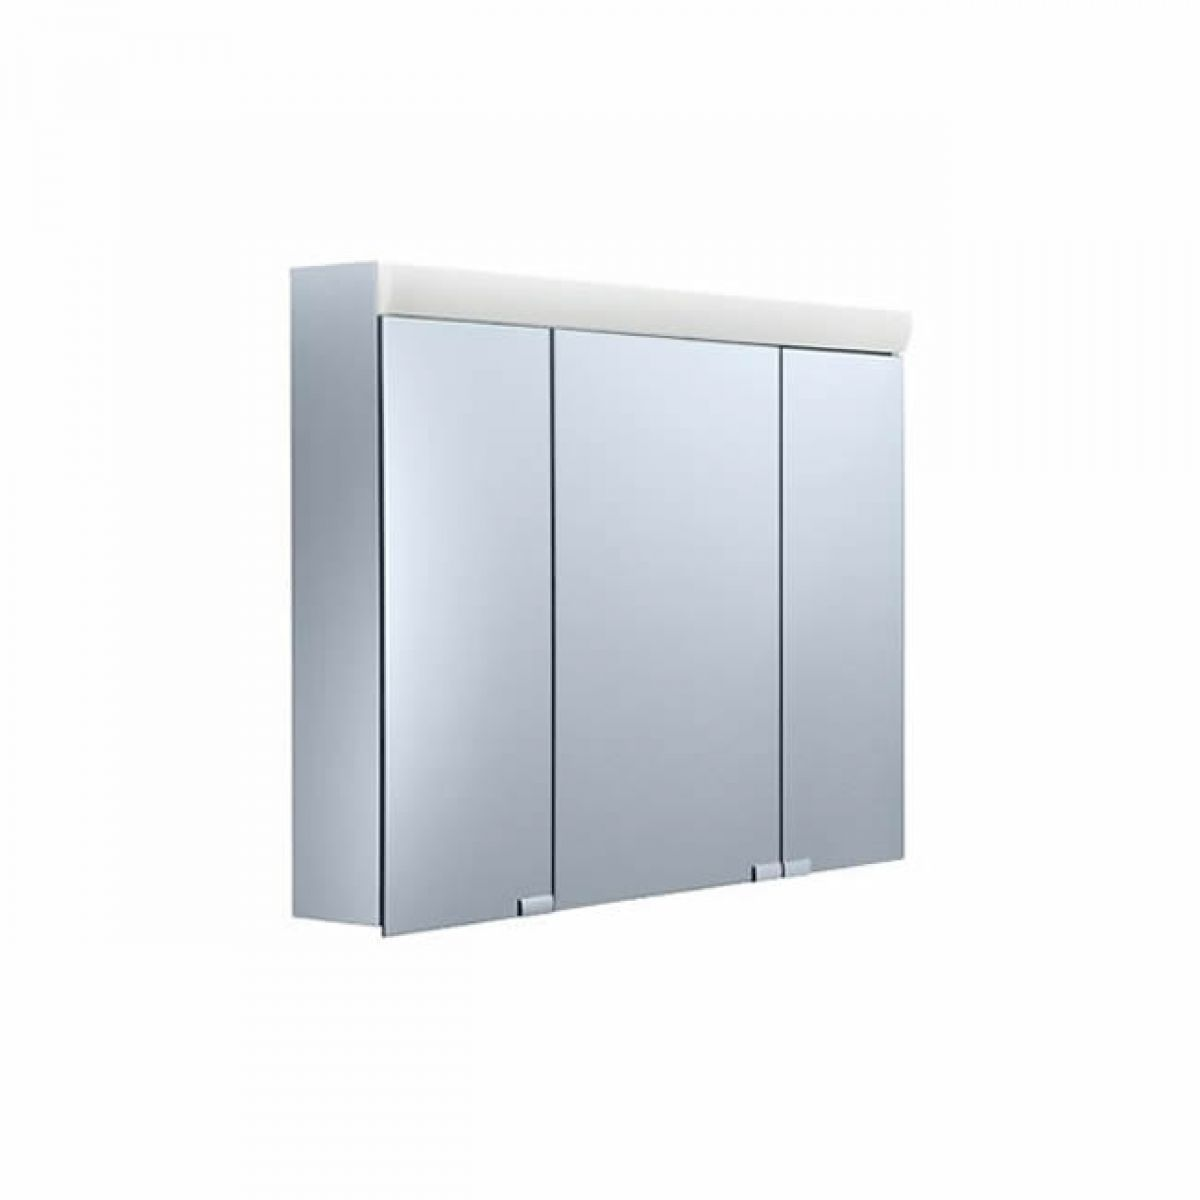 keuco royal 10 900mm mirror cabinet uk bathrooms